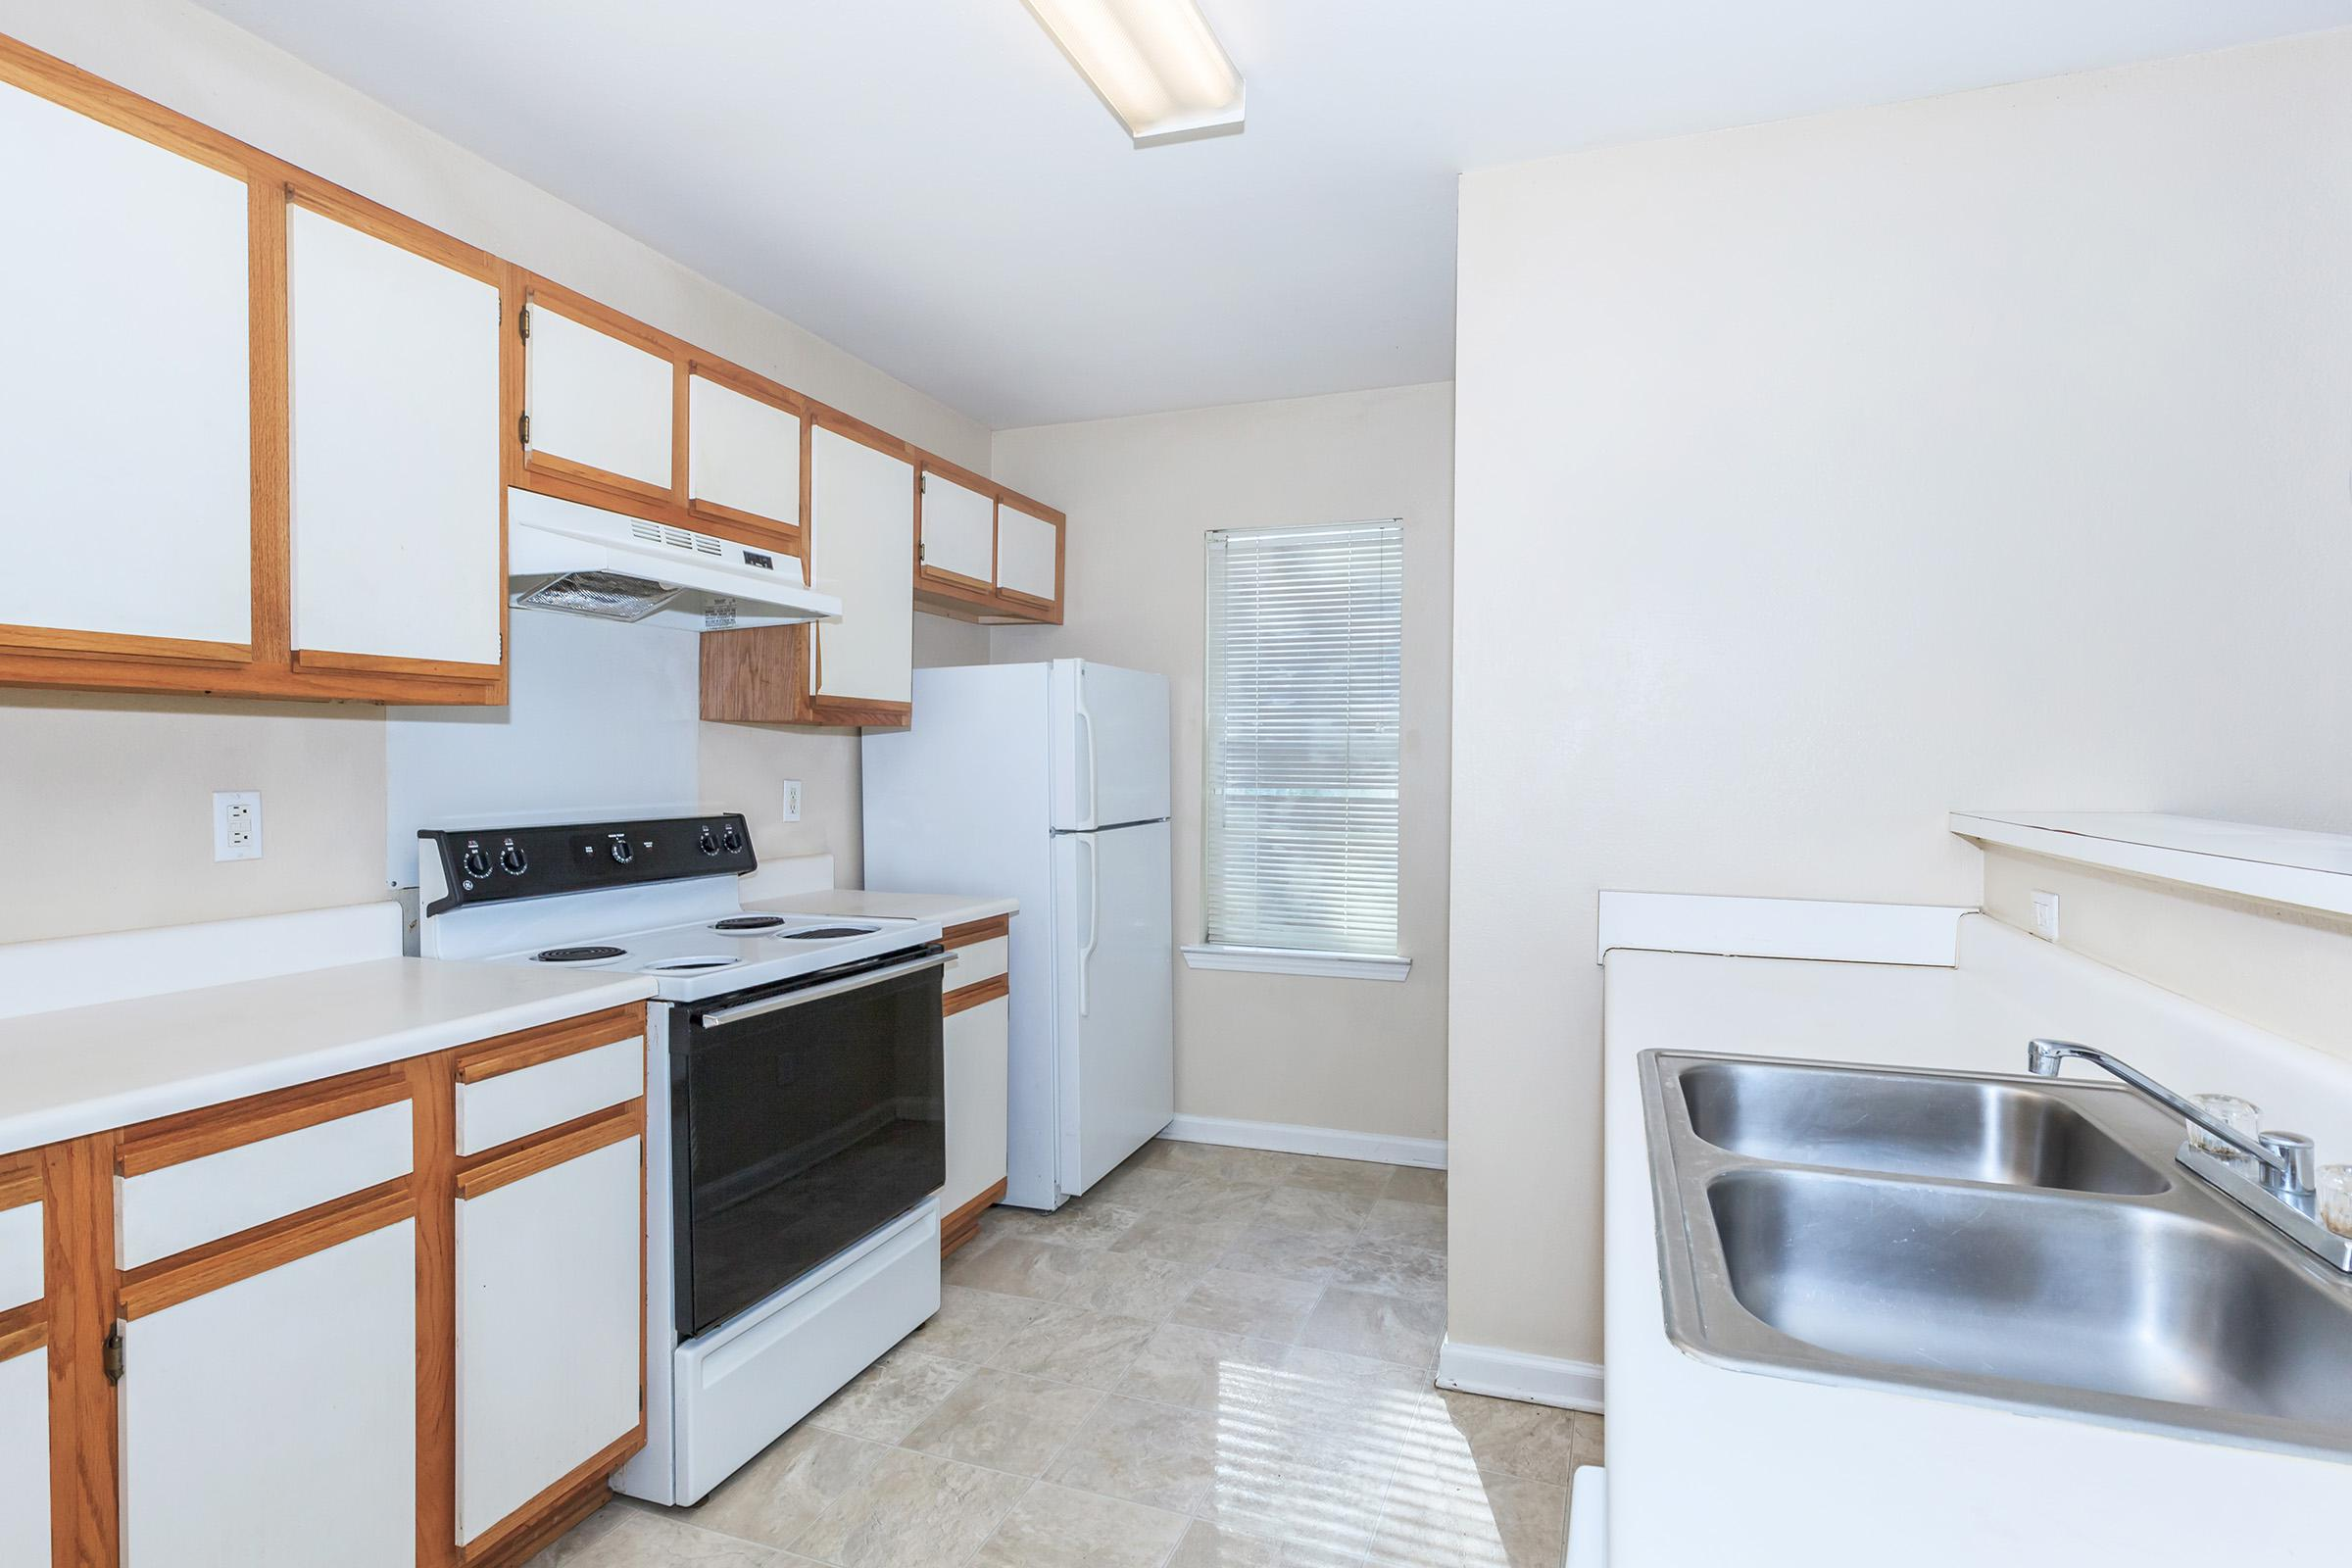 a kitchen with a sink and a window